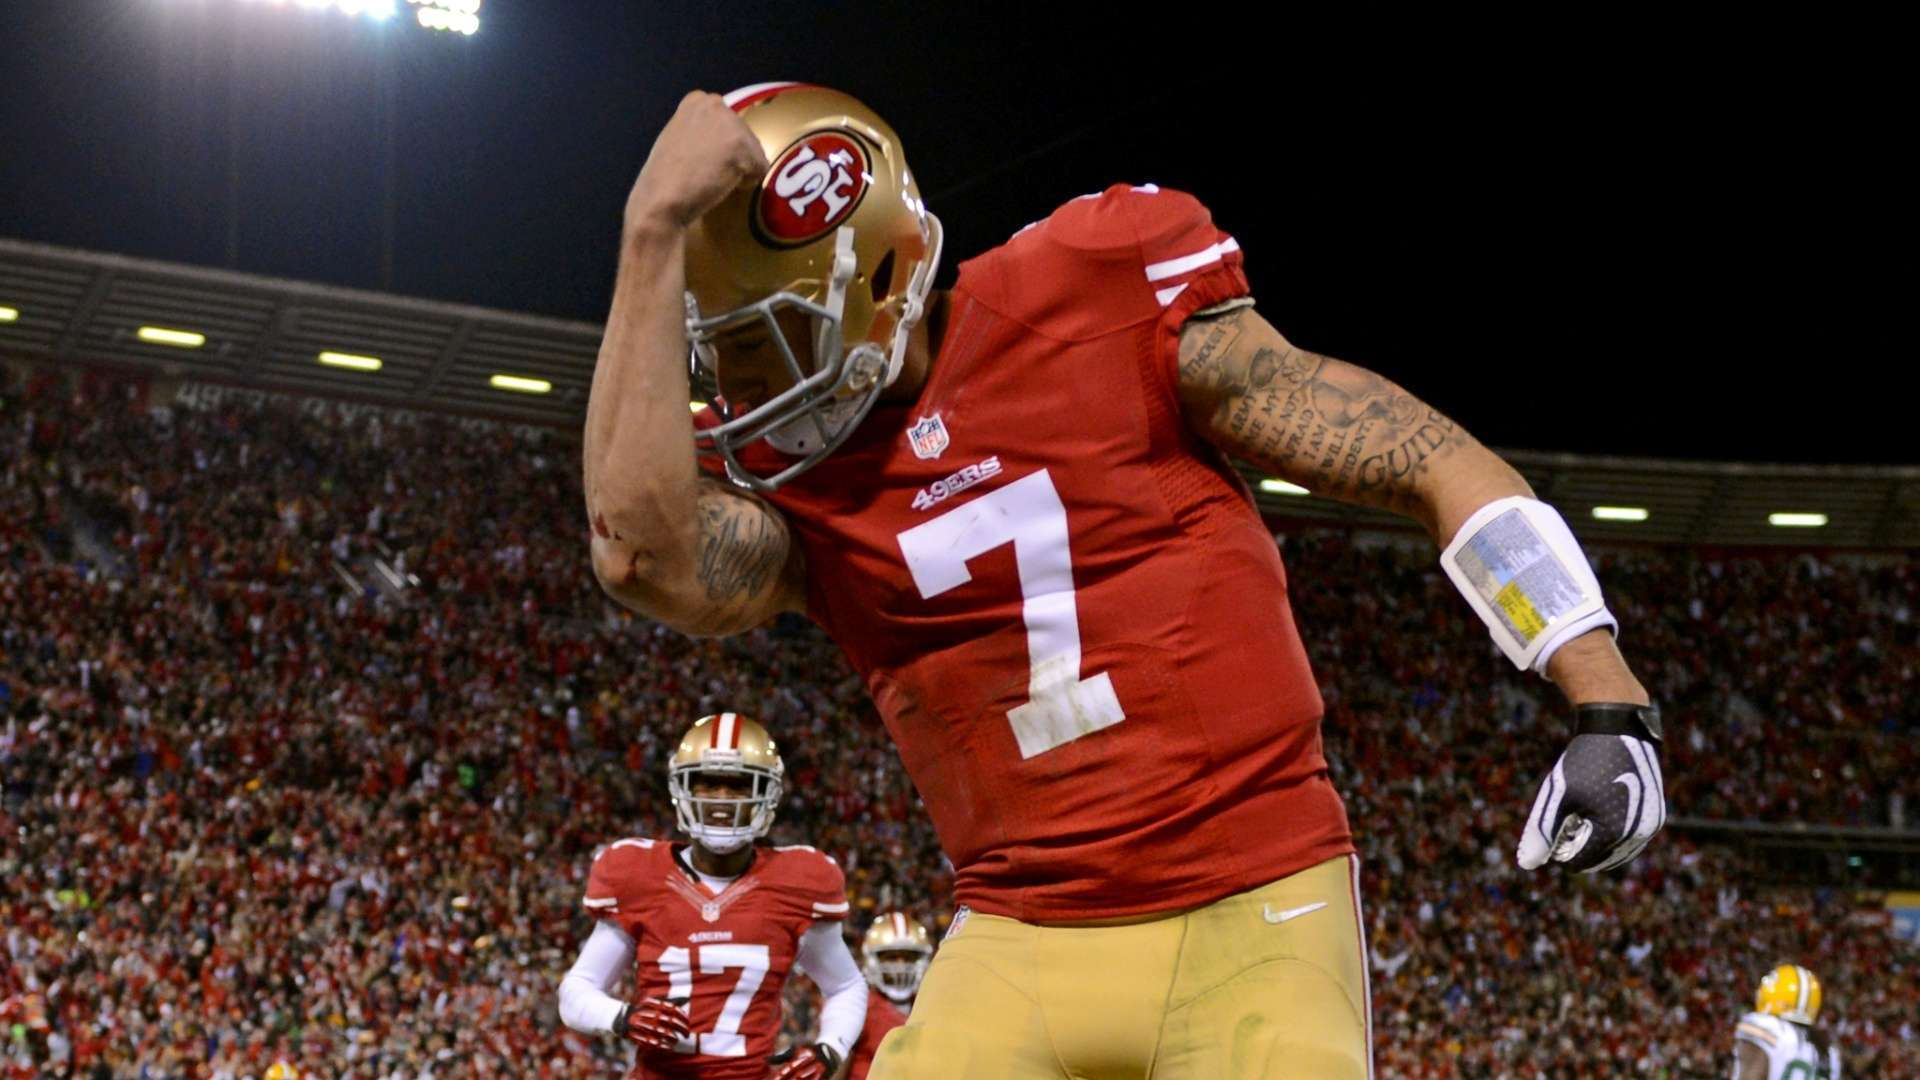 San Francisco 49ers Kaepernick | Download High Quality Resolution ...